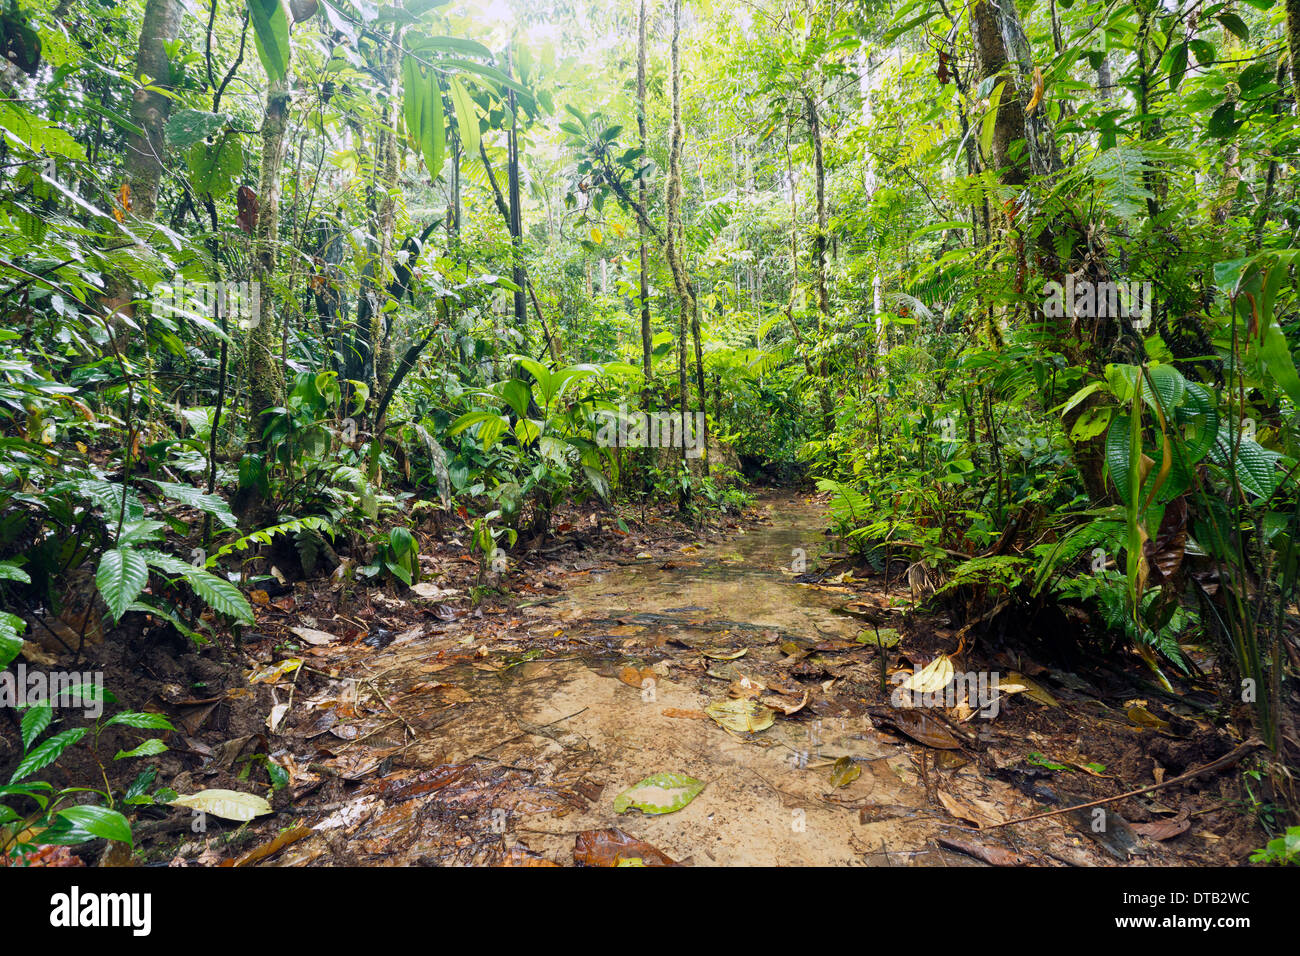 Open muddy clearing in Amazonian Rainforest, Ecuador, during the wet season. - Stock Image